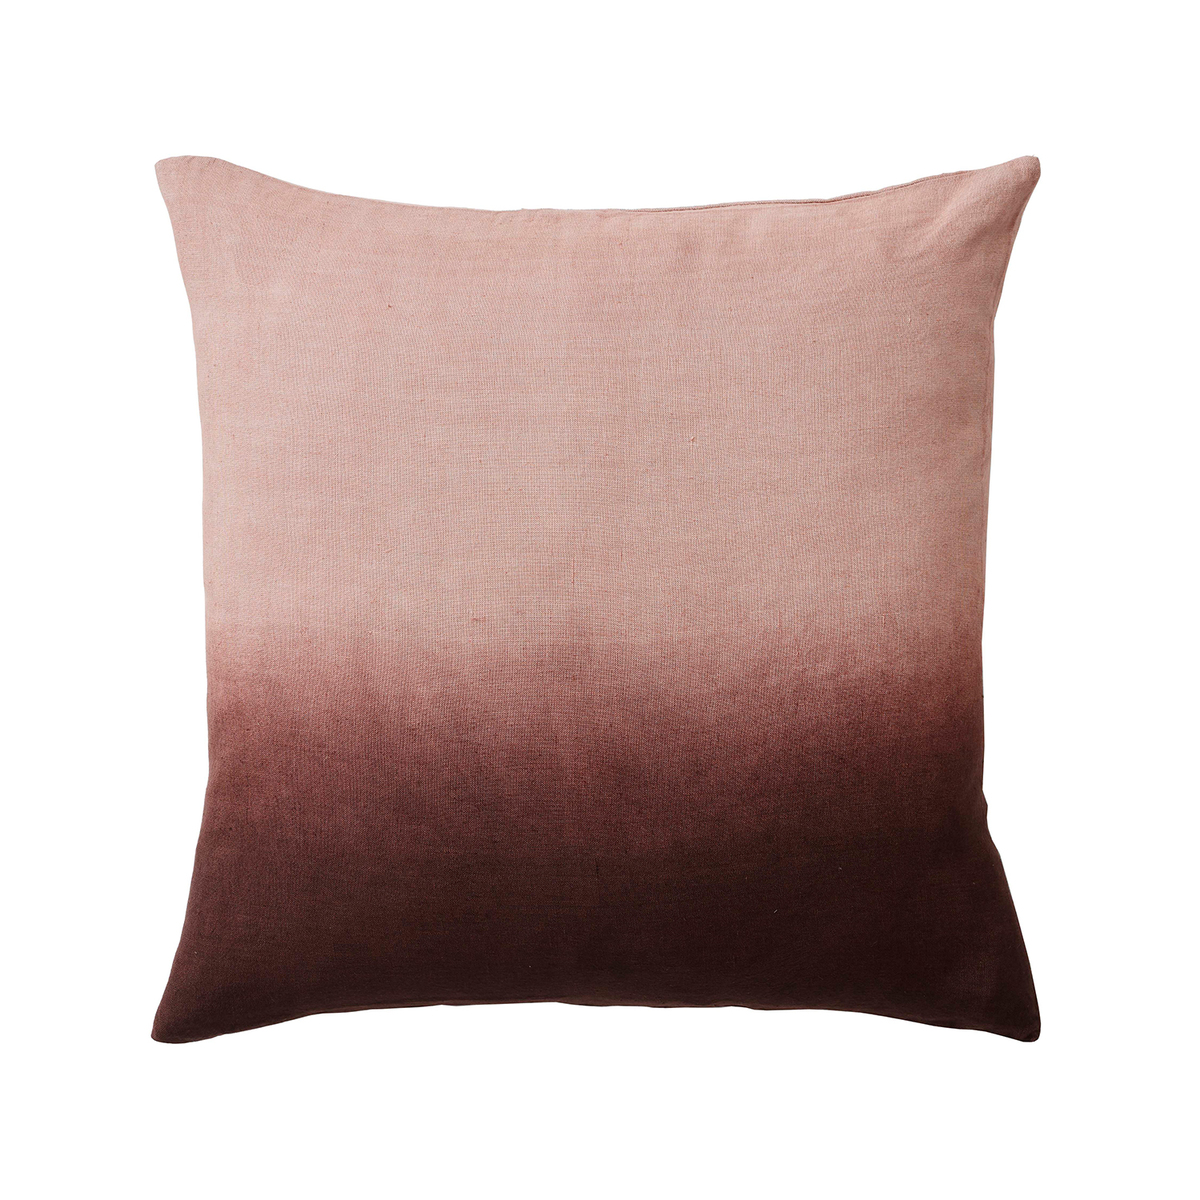 &Tradition Collect Indigo SC28 cushion, 50 x 50 cm, cloud - burgundy from &Tradition